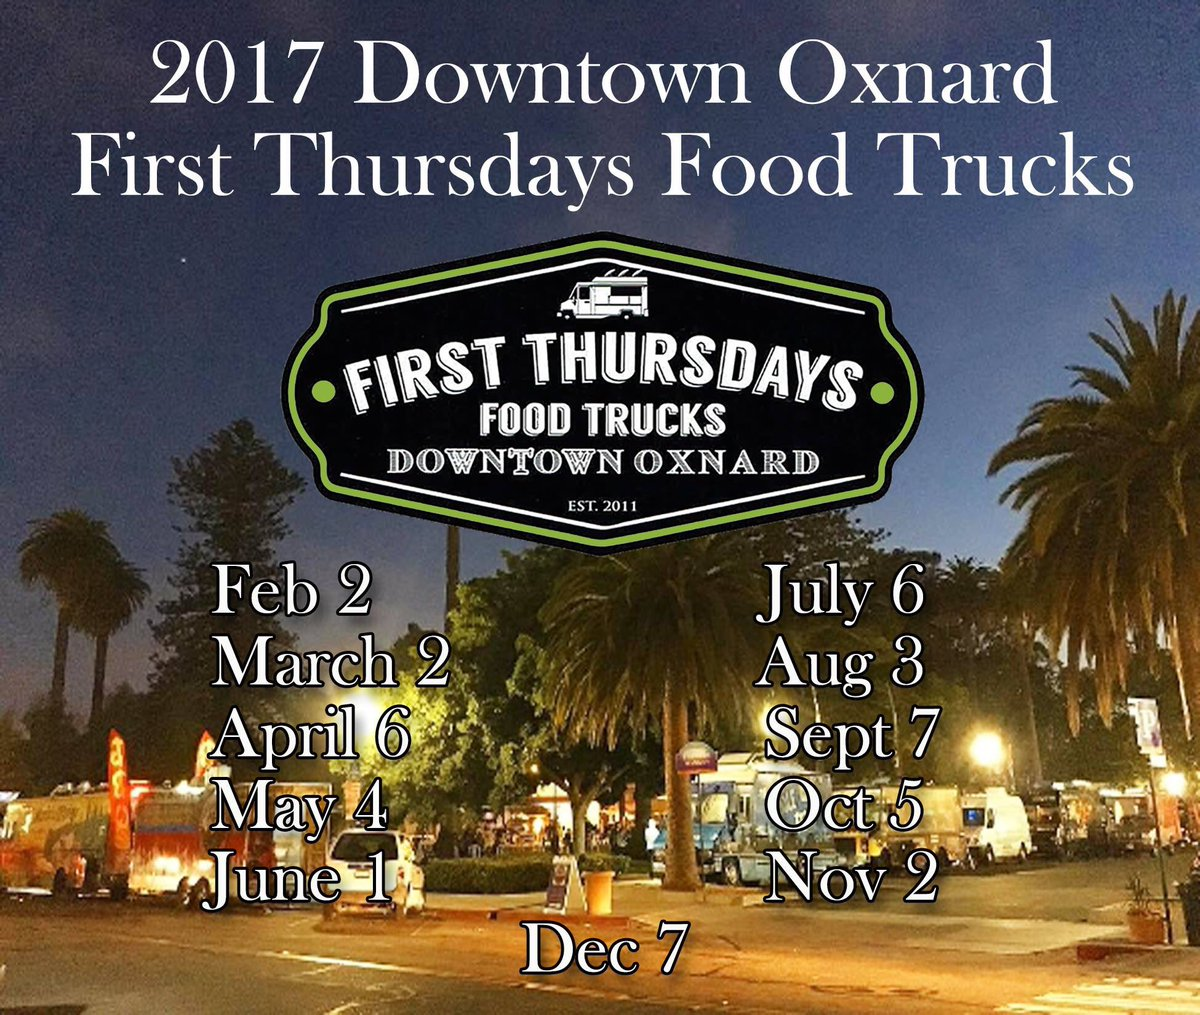 Food Trucks Plaza Park Oxnard